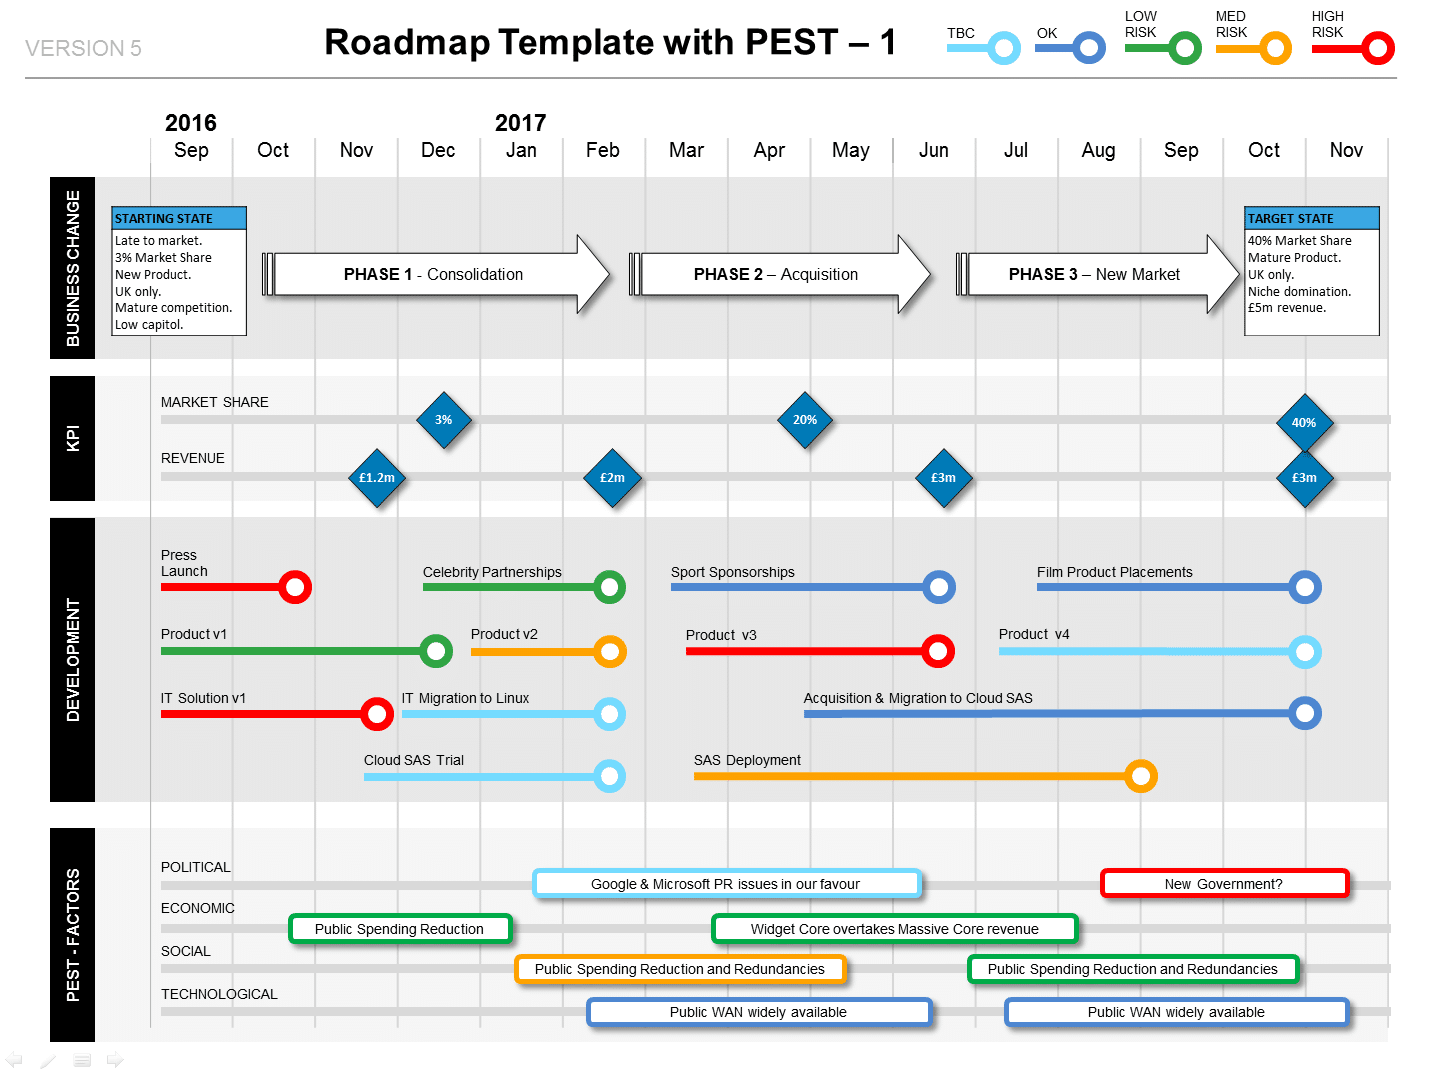 roadmap templates powerpoint - gse.bookbinder.co, Modern powerpoint